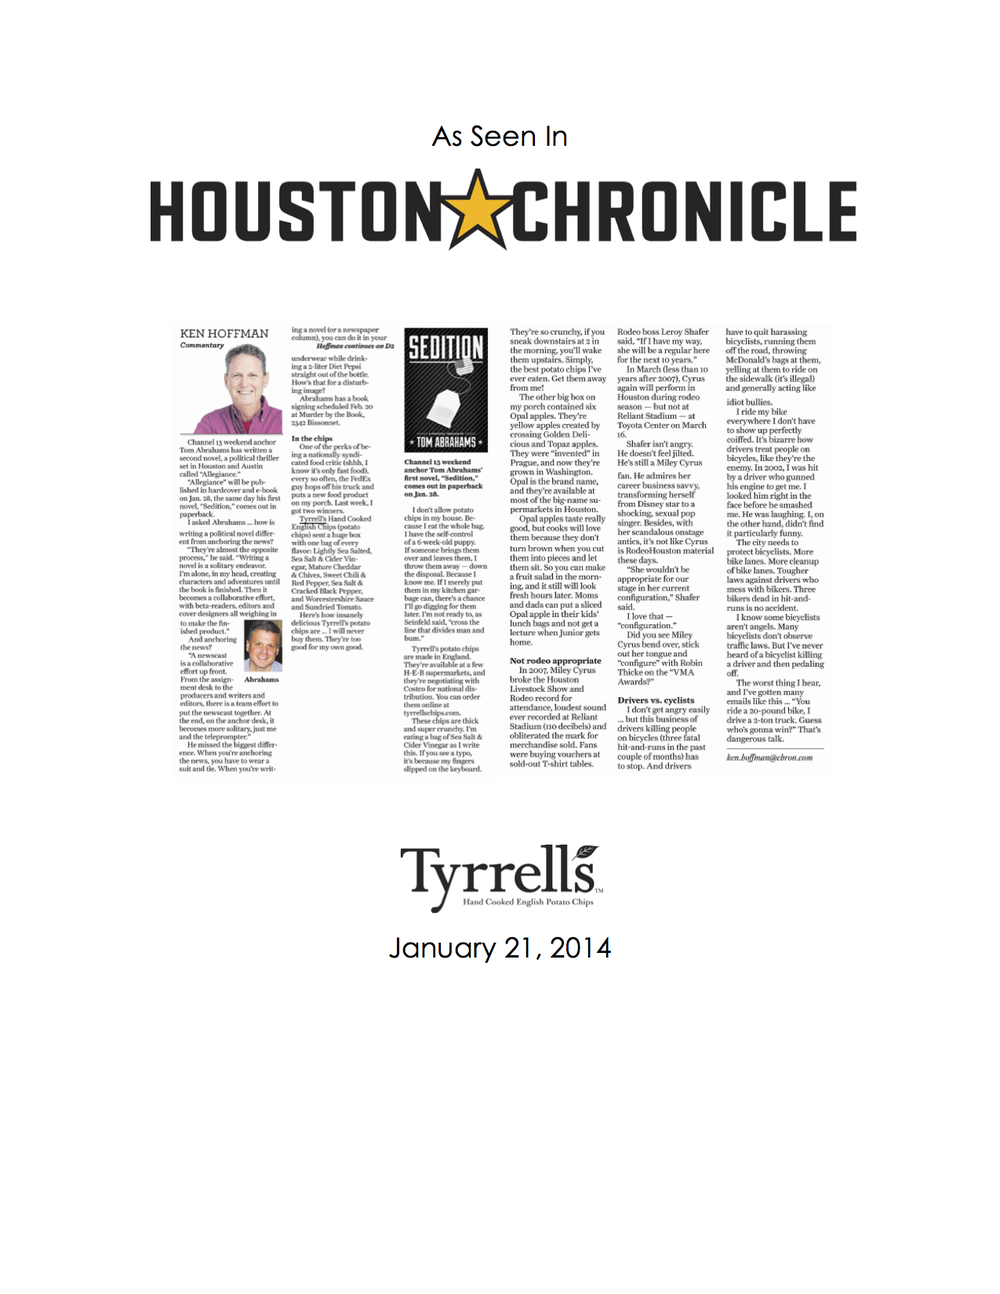 Tyrrells Coverage As Seen In Houston Chronicle copy.jpg